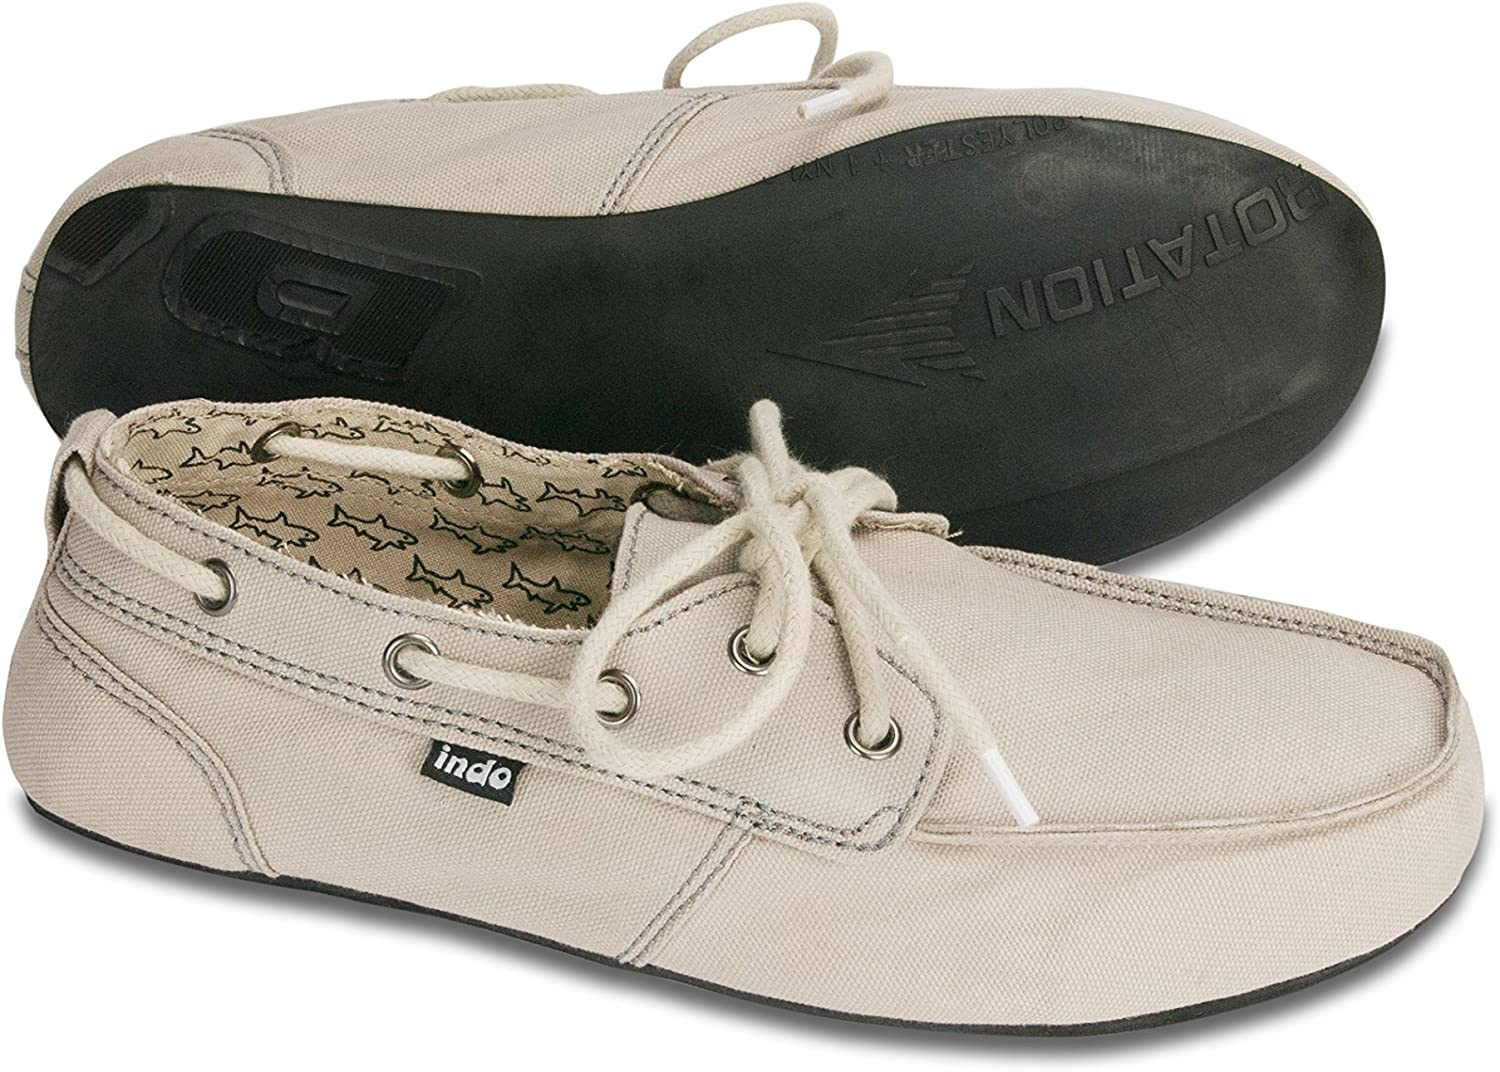 Indosole 100% Repurposed Tire Sole, Men's Prahu Boat shoes